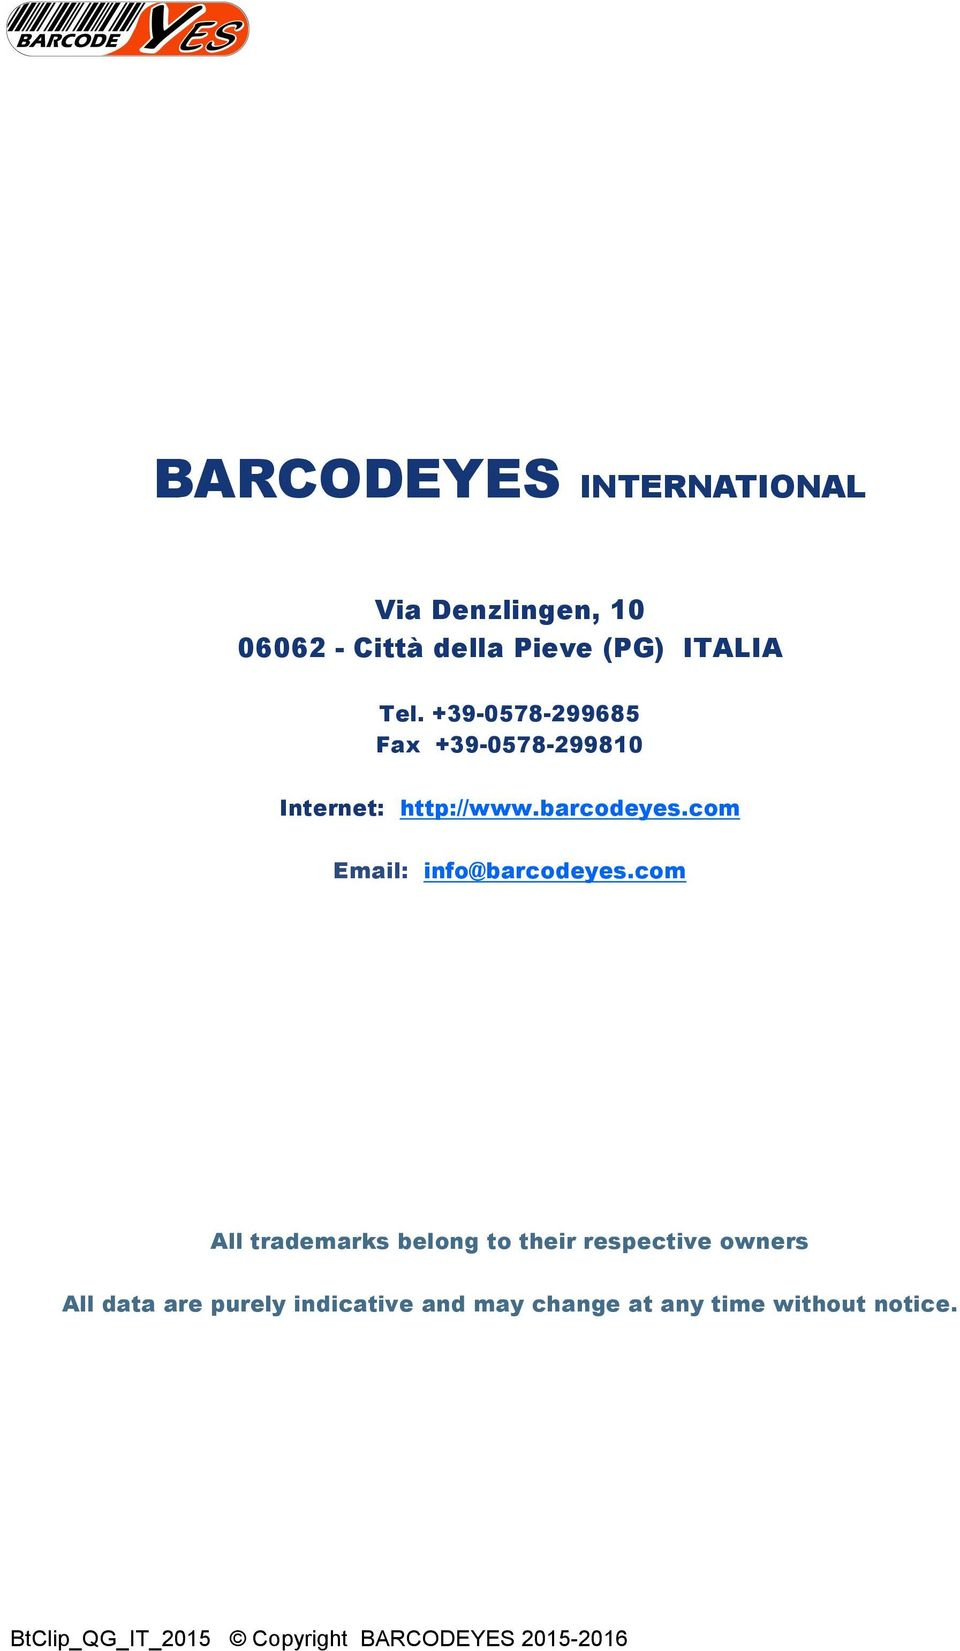 barcodeyes.com Email: info@barcodeyes.